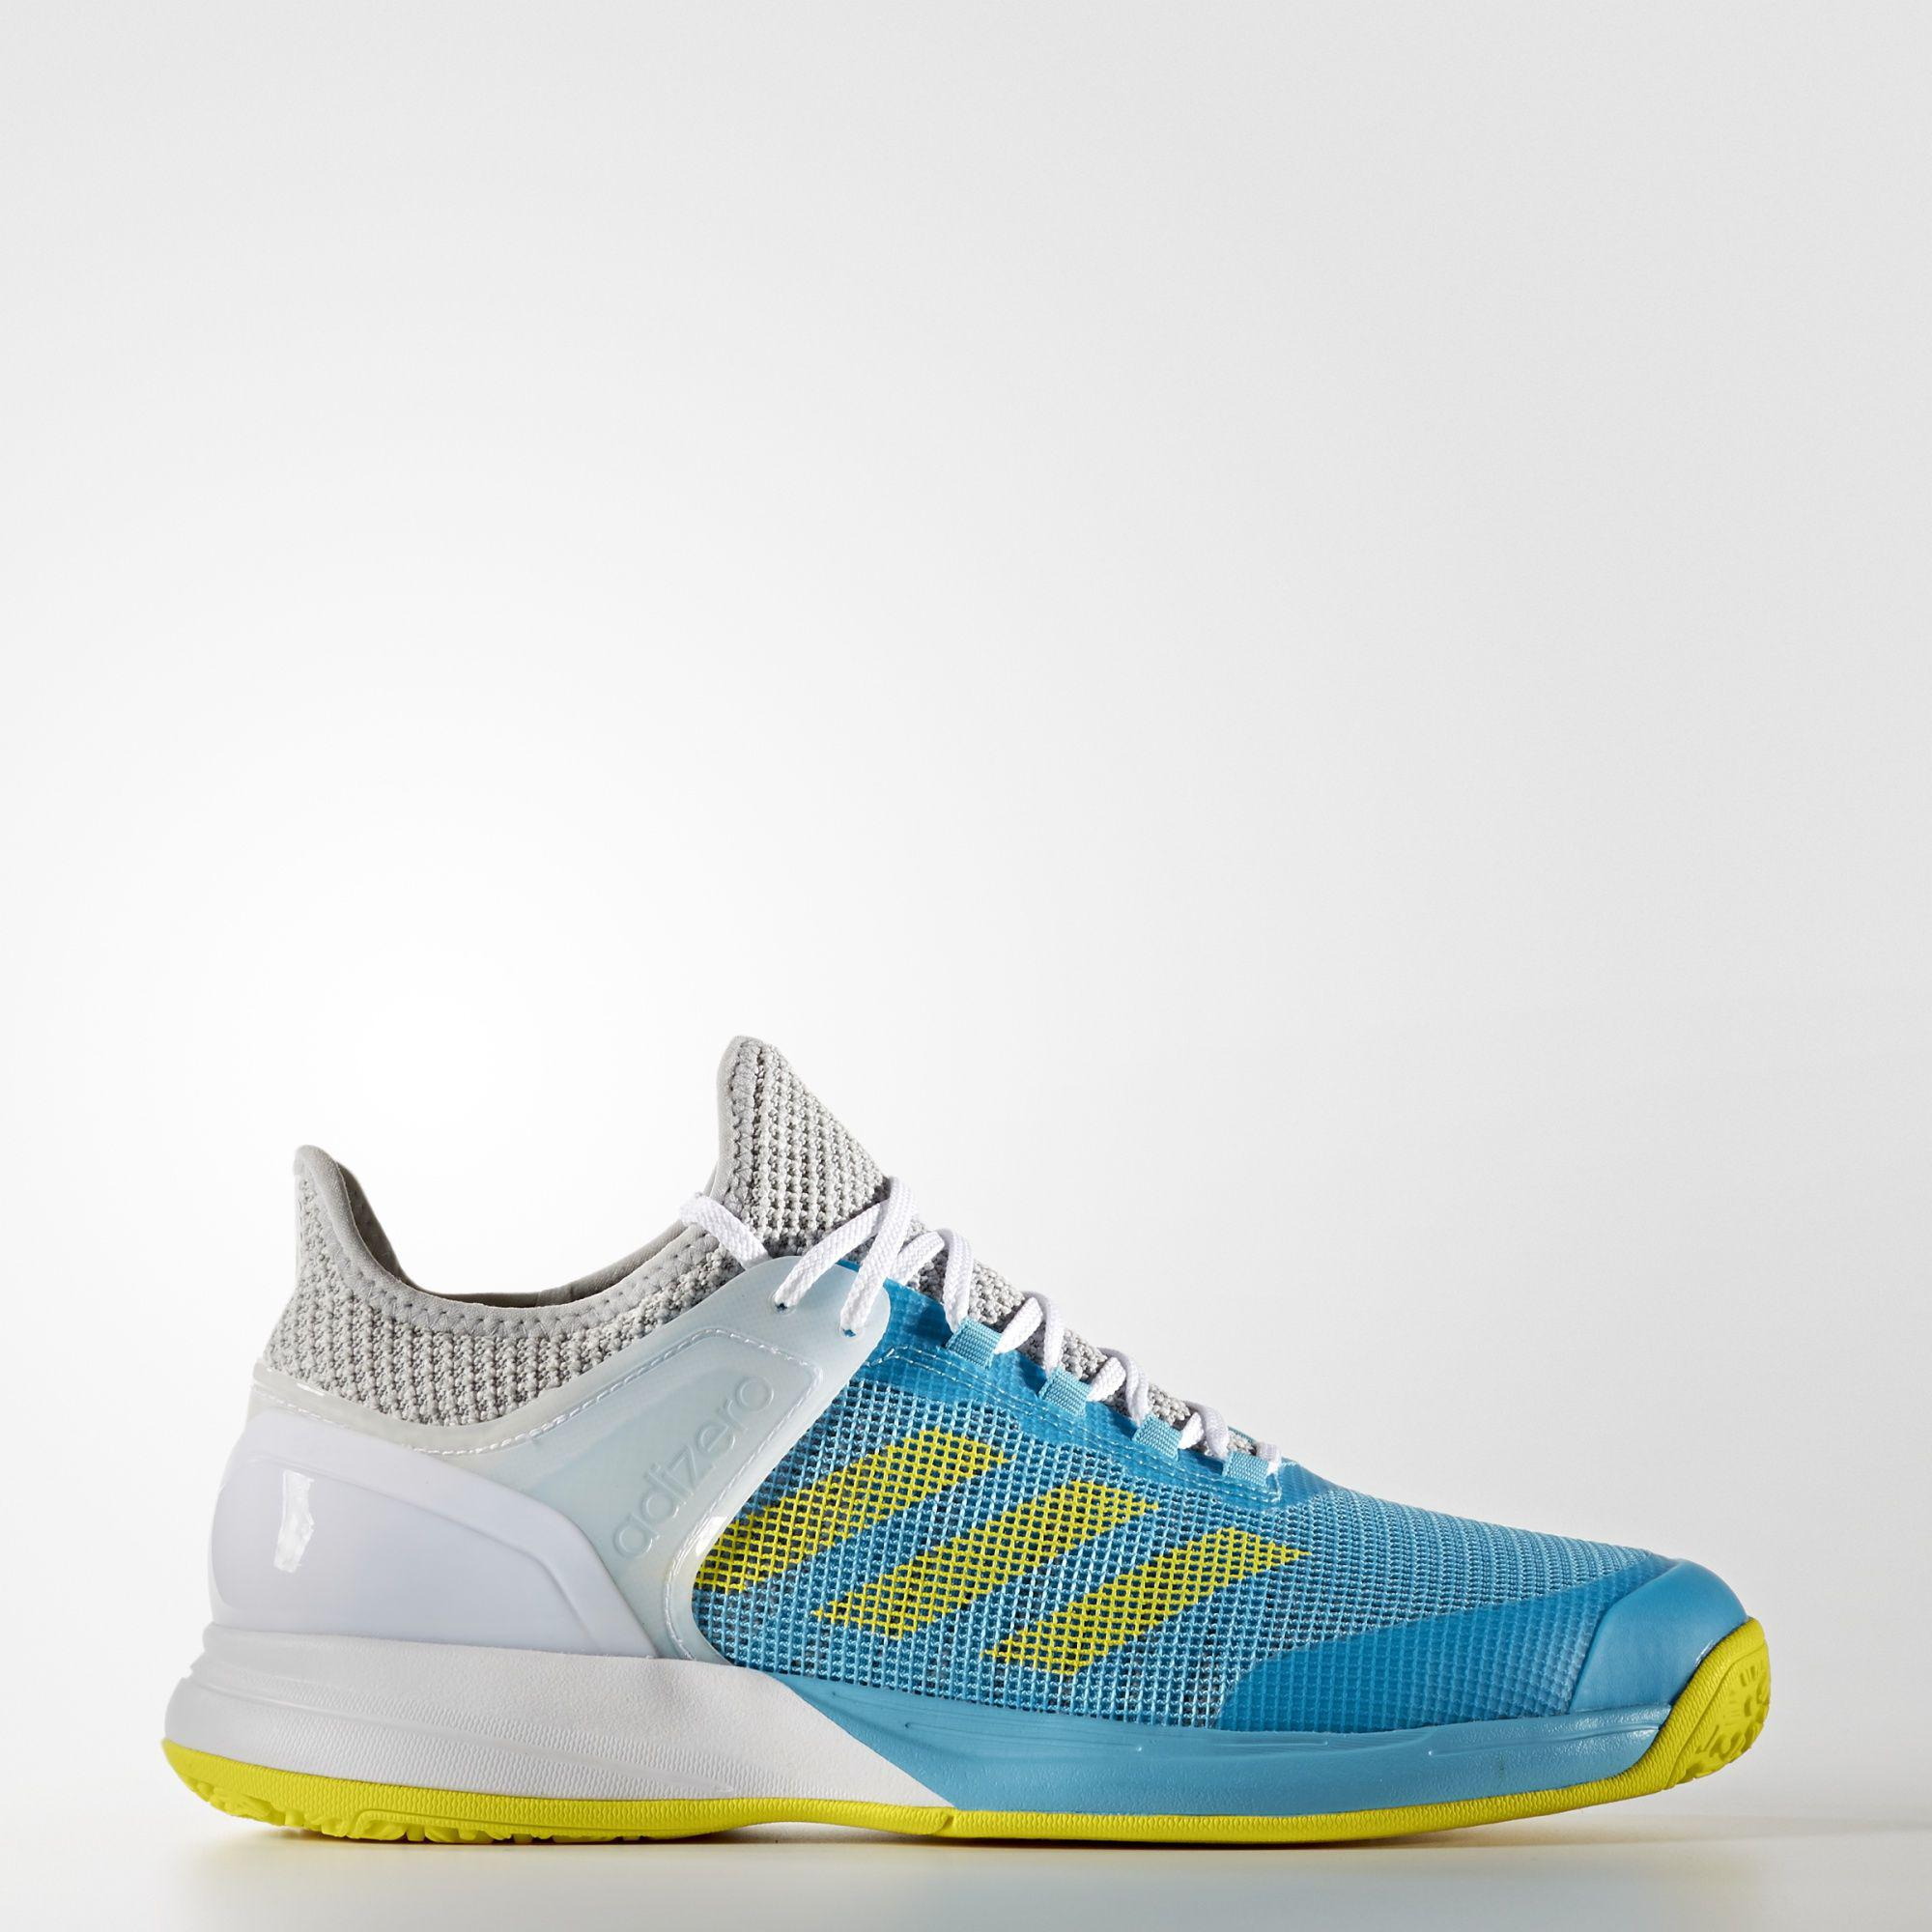 check out c3cc4 e3403 Adidas Mens Adizero Ubersonic 2.0 Omni Tennis Shoes - BlueYellow -  Tennisnuts.com